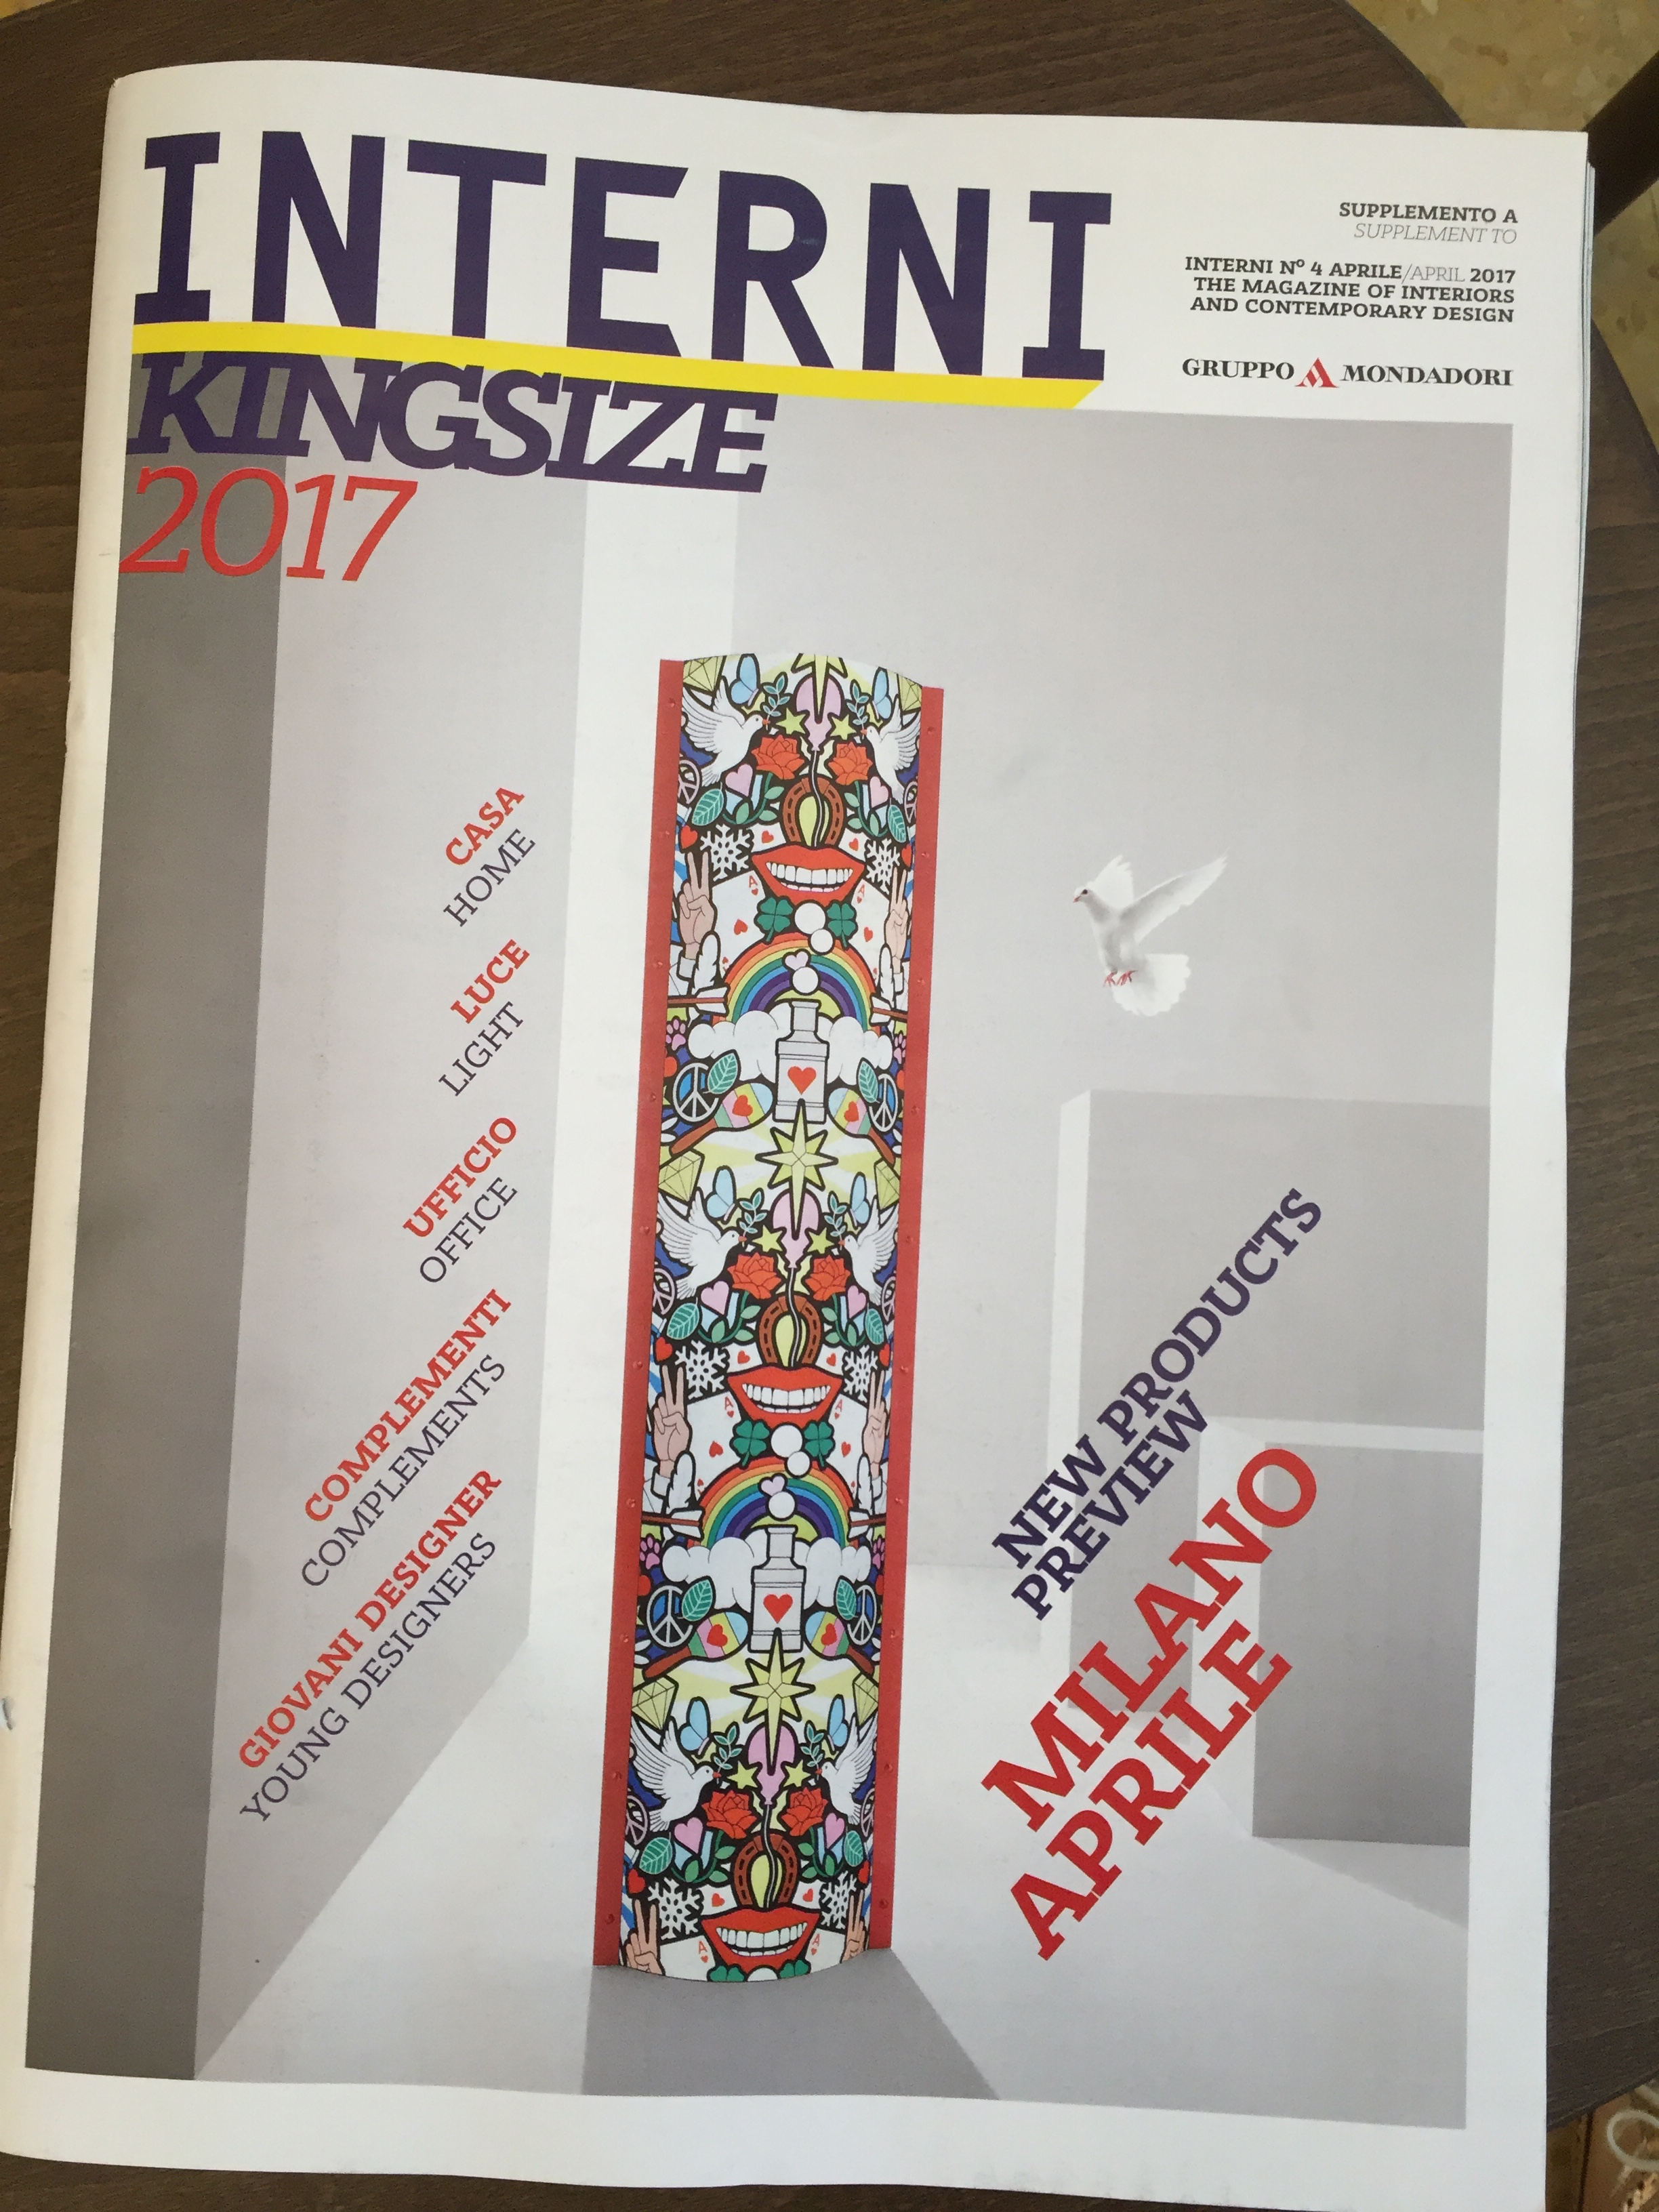 ITALY - APRIL 2017 - KINGSIZE SPECIAL EDITION SALONE DEL MOBILE 2017